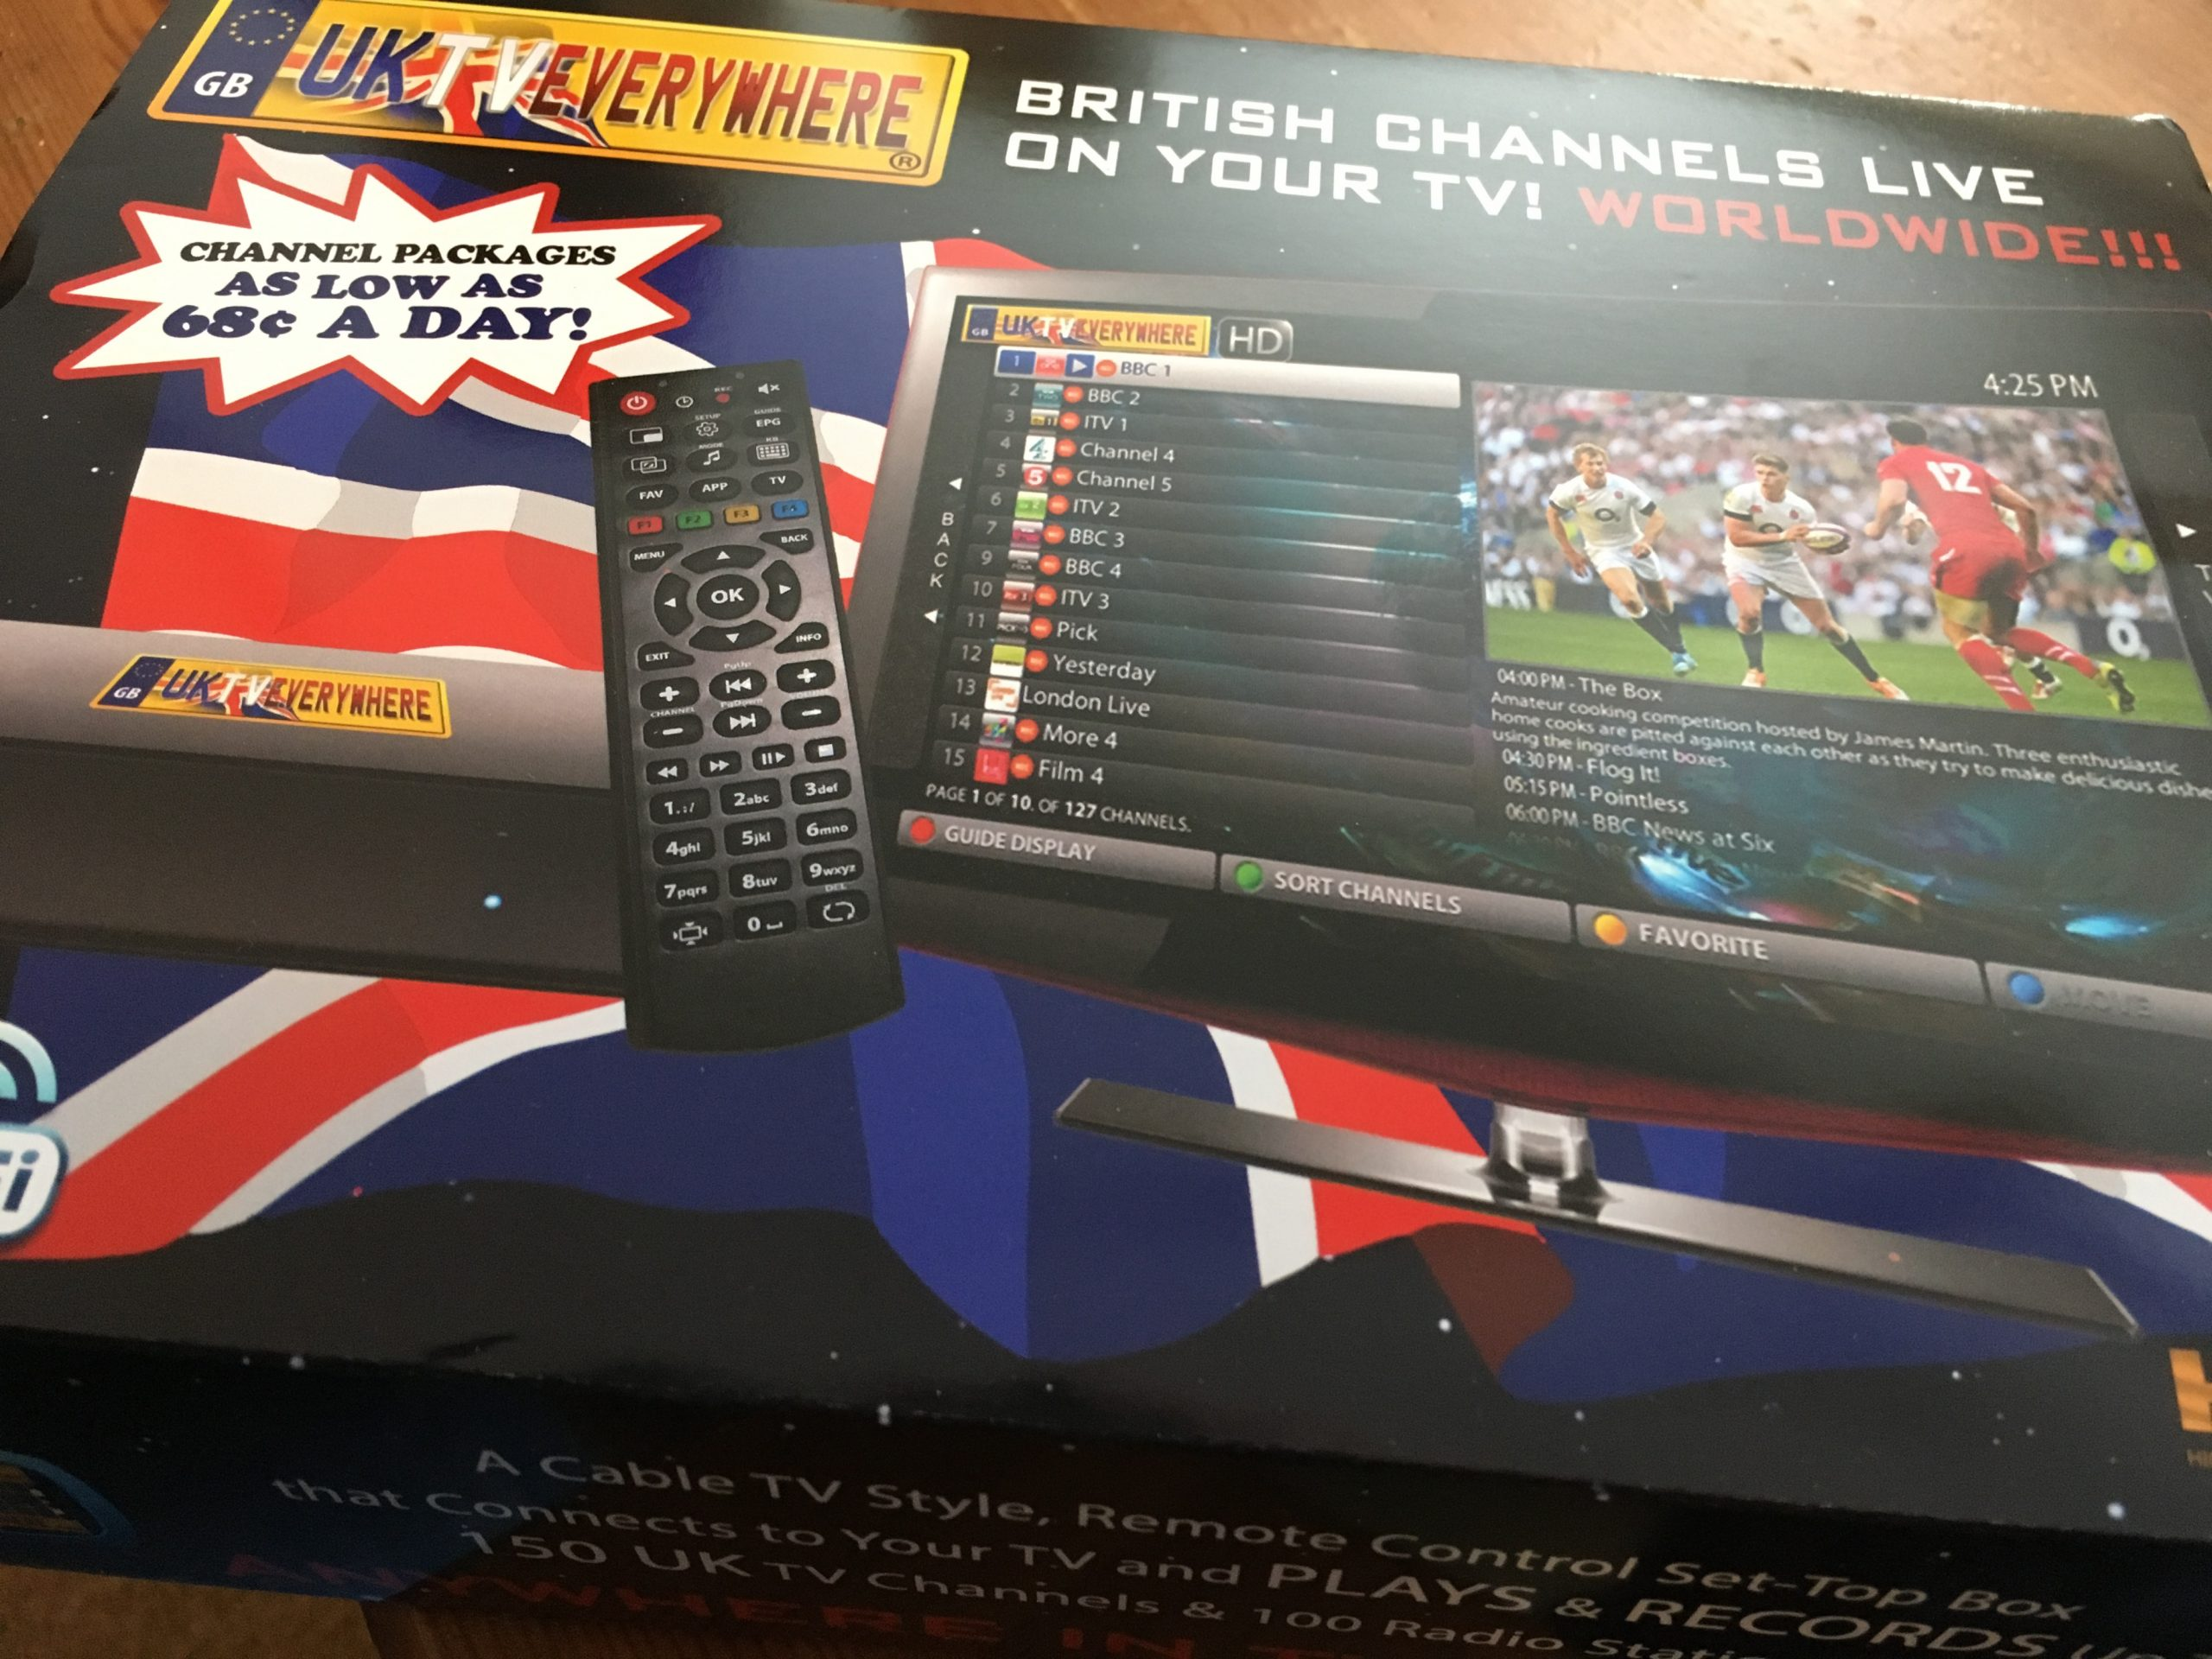 Brit Telly: Reviewing the New UK TV Everywhere STB-4x Telly